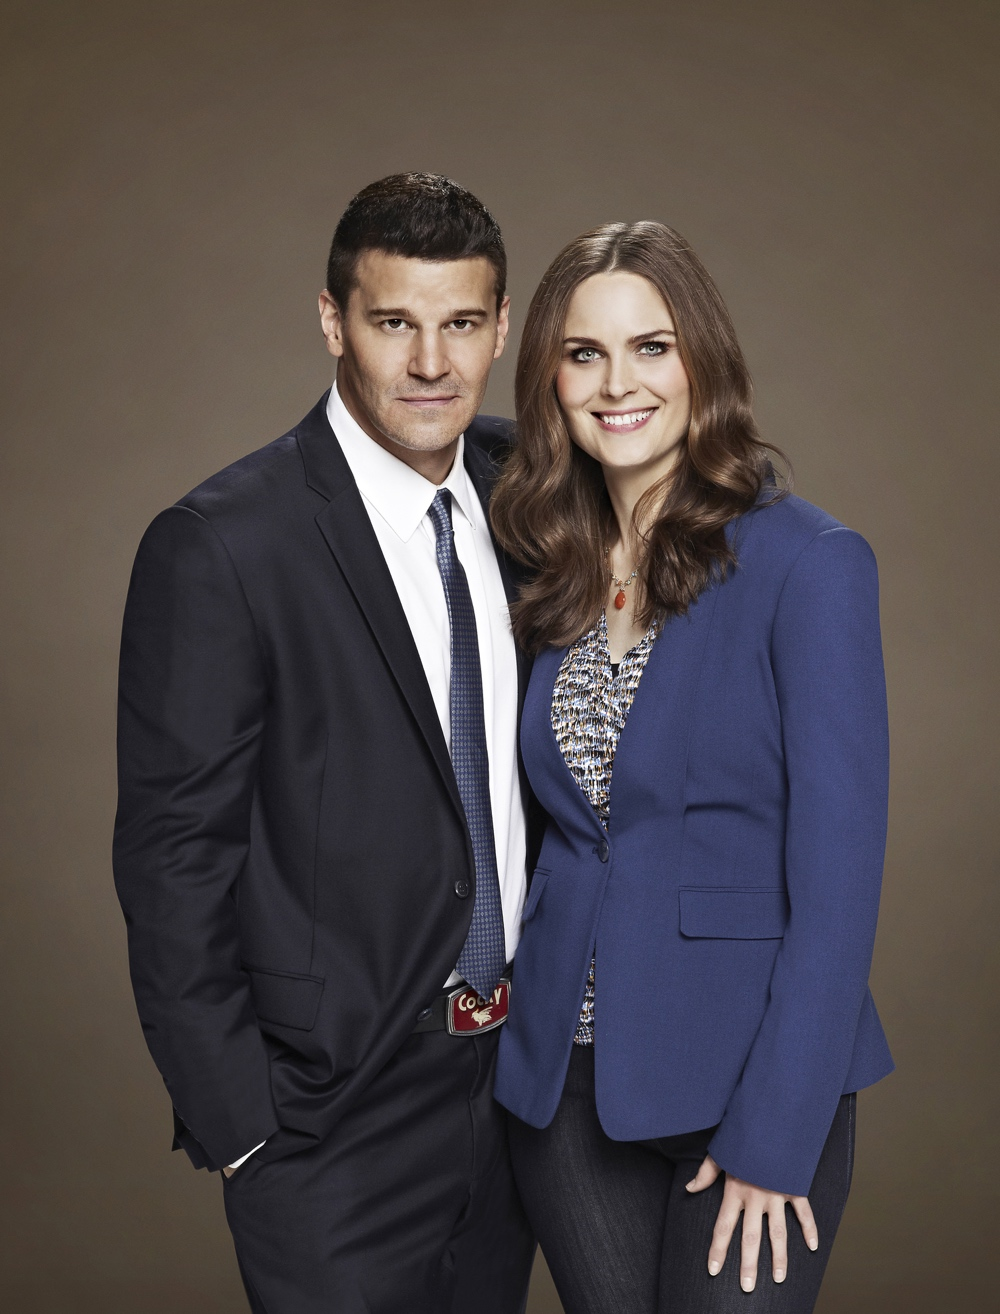 david boreanaz bones season 9 - photo #33